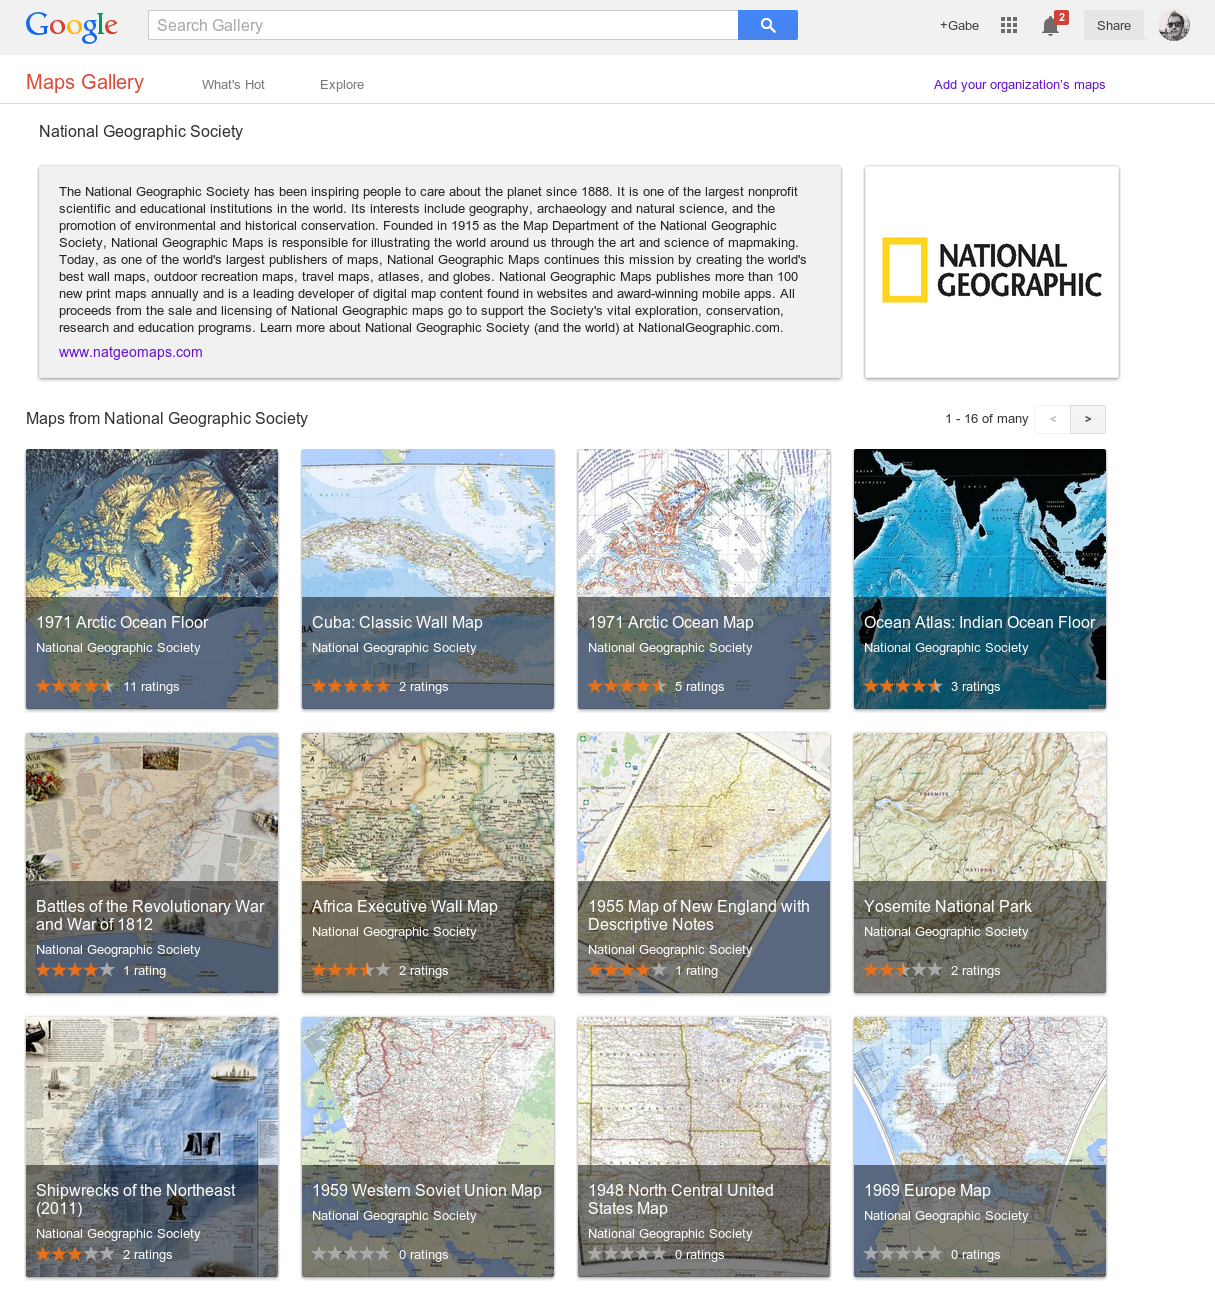 NatGeo Google launches Maps Gallery, a new digital atlas that lets you explore third party maps